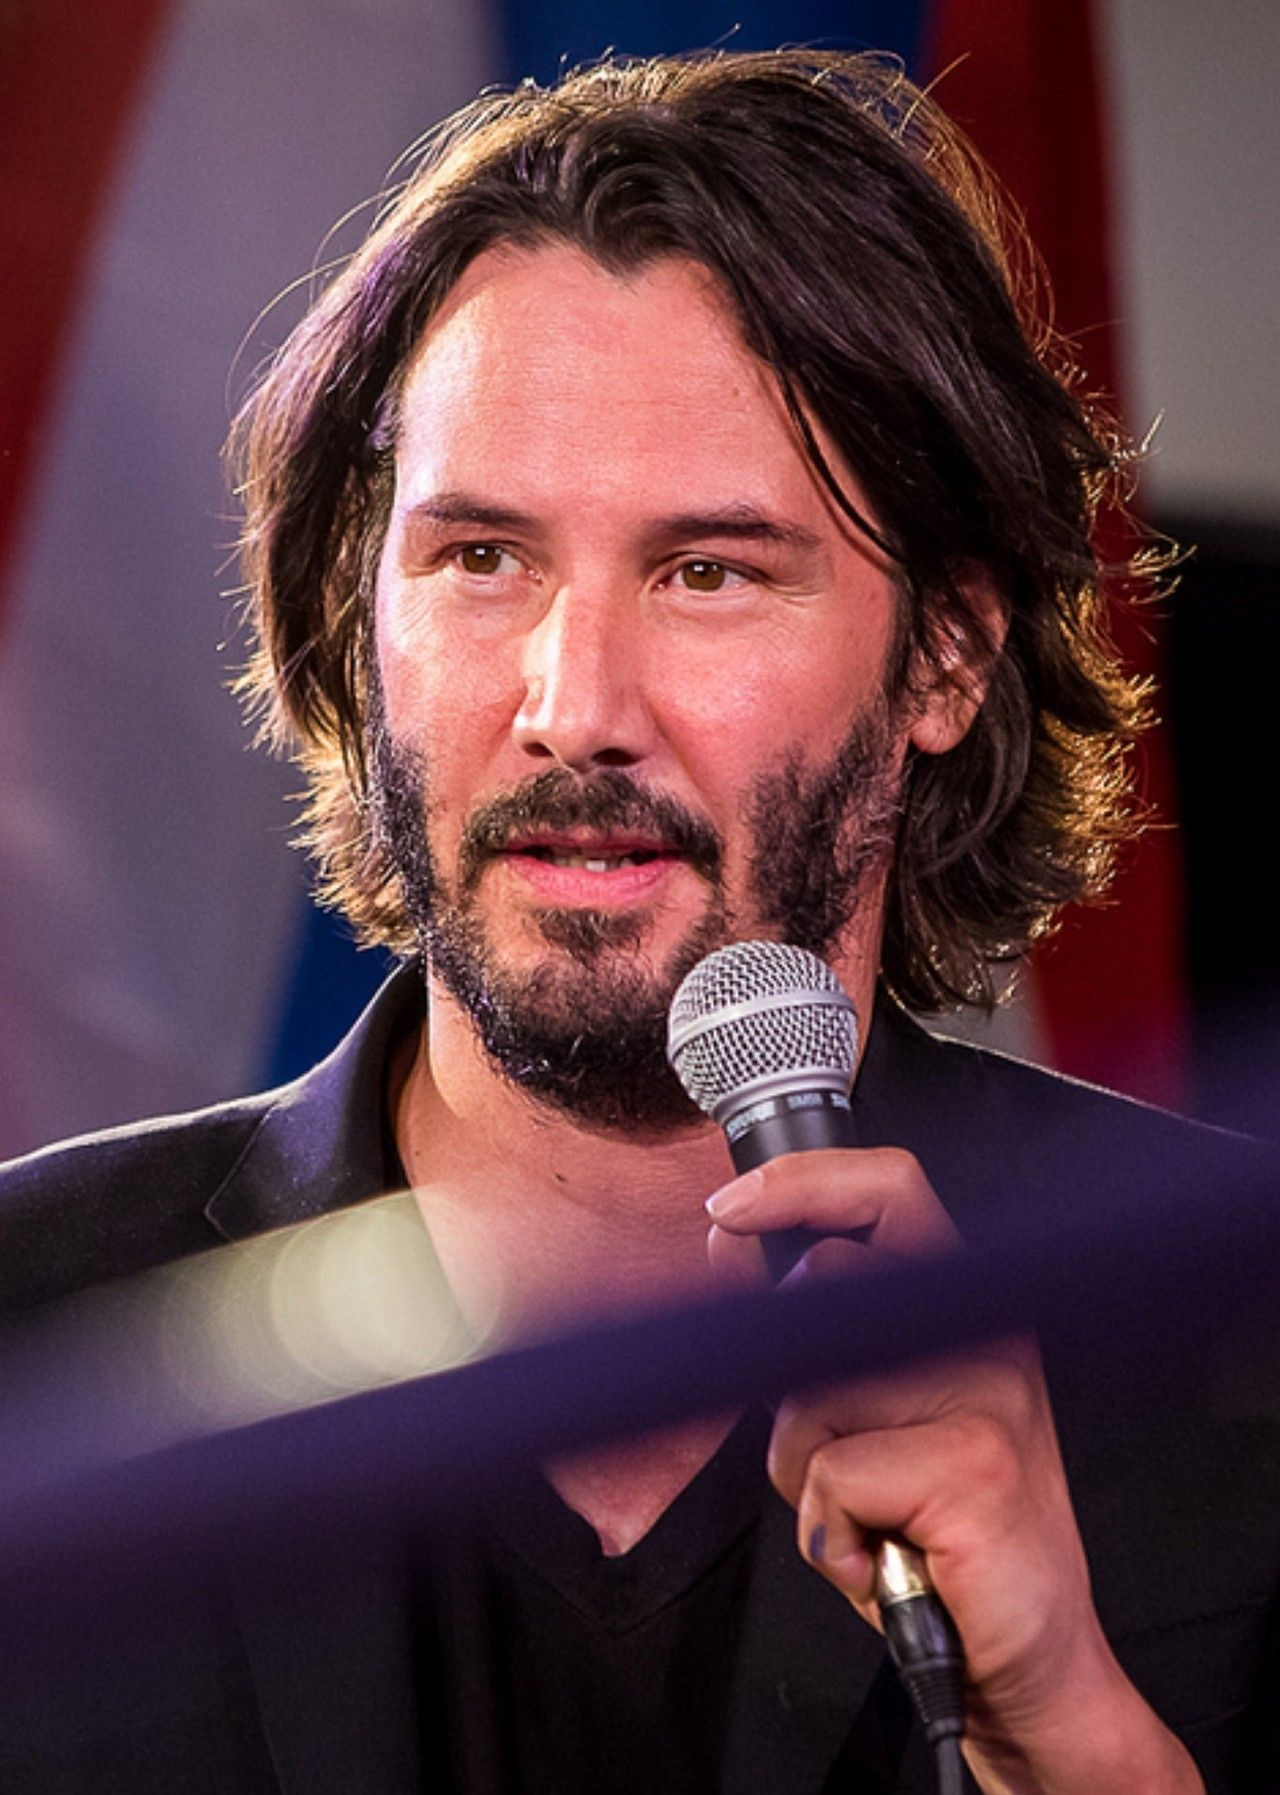 Pin by Jade Paige on Fifty Shades Of Keanu Reeves Keanu